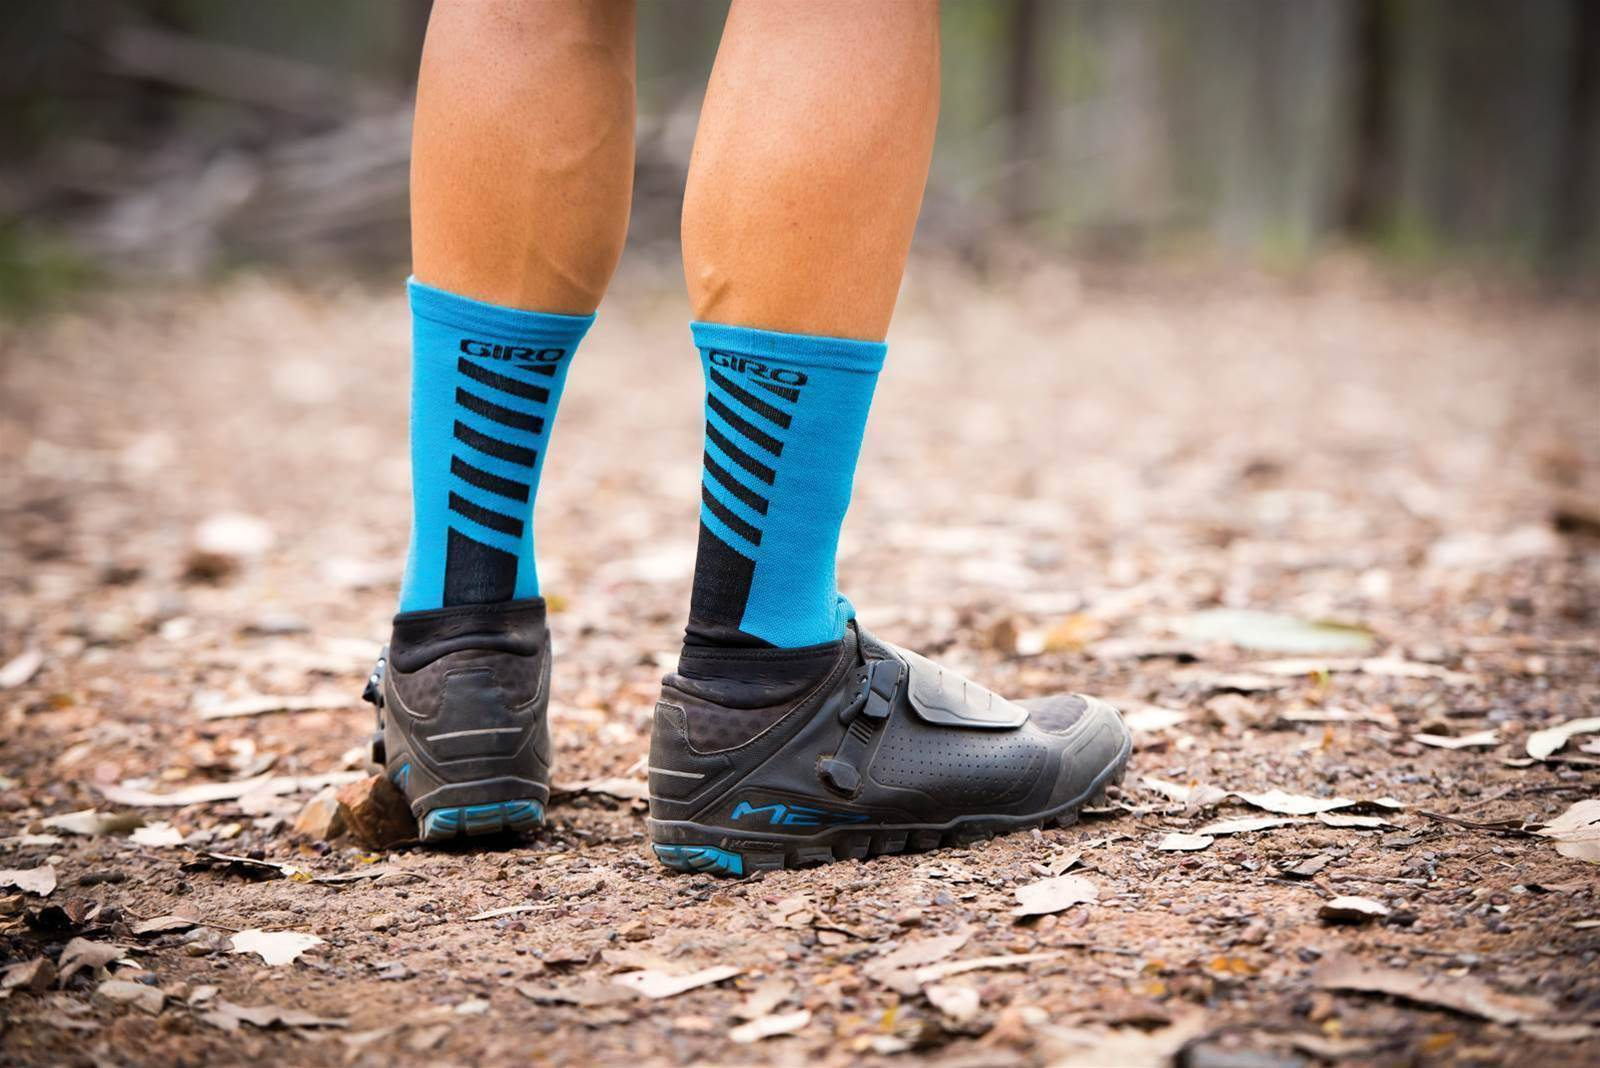 Reviewed: Giro HRC+ Merino wool sock